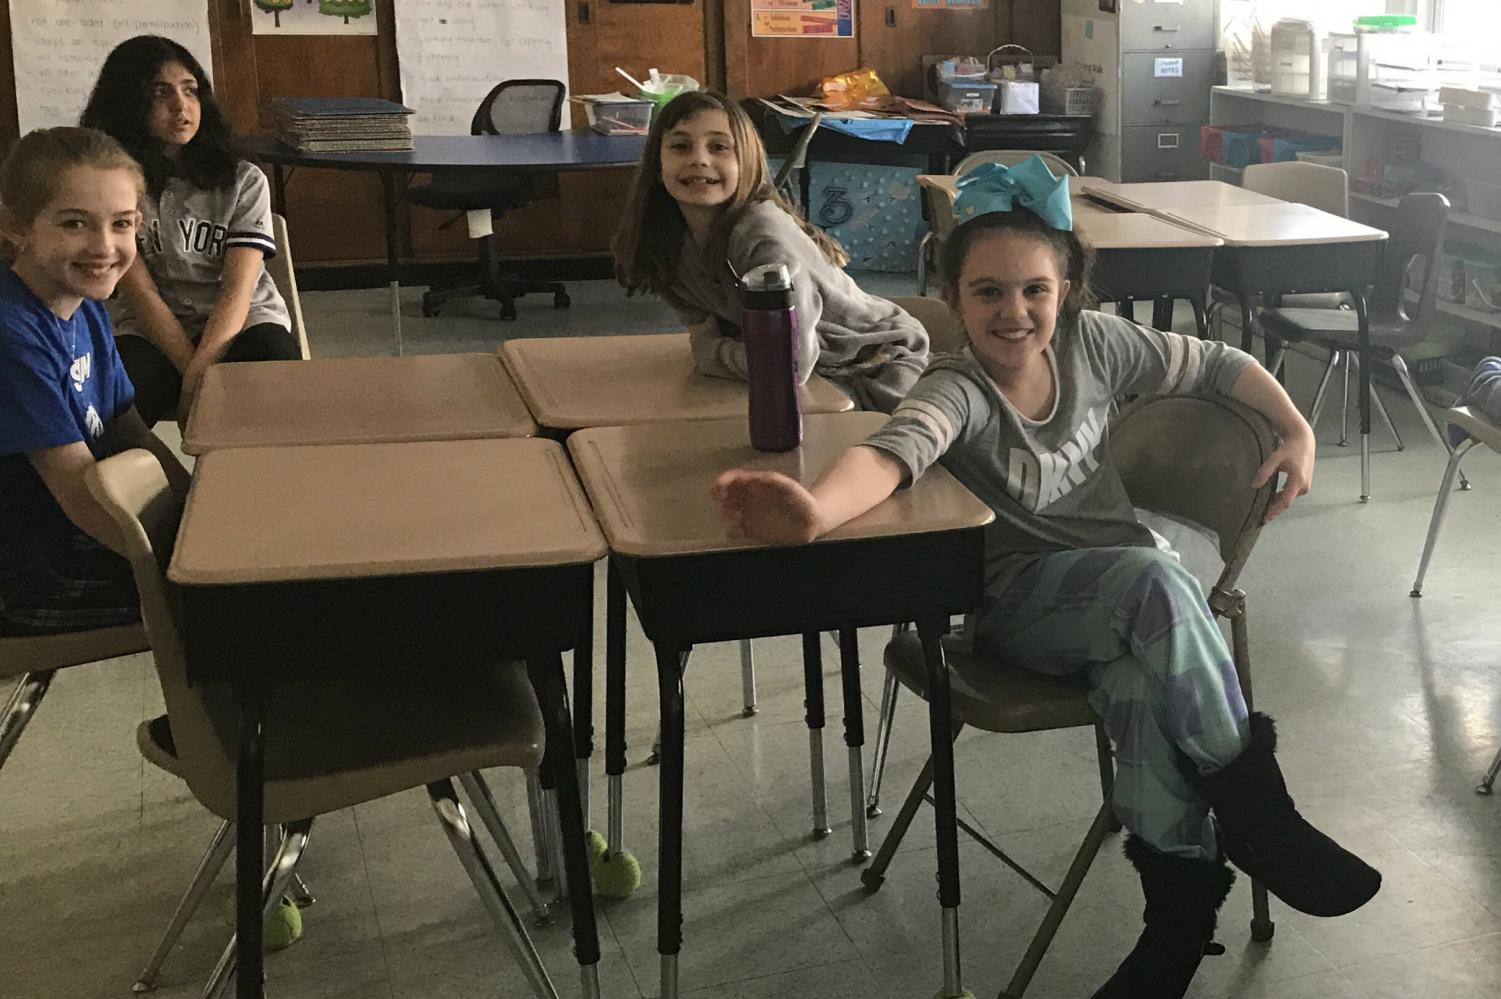 The family of sixth grade math teacher Mrs. Leigh Martin is very excited to participate in this month's activity. This family calls themselves the Ferocious Ferrets. All the famlies created fun names for themselves at their first meeting.